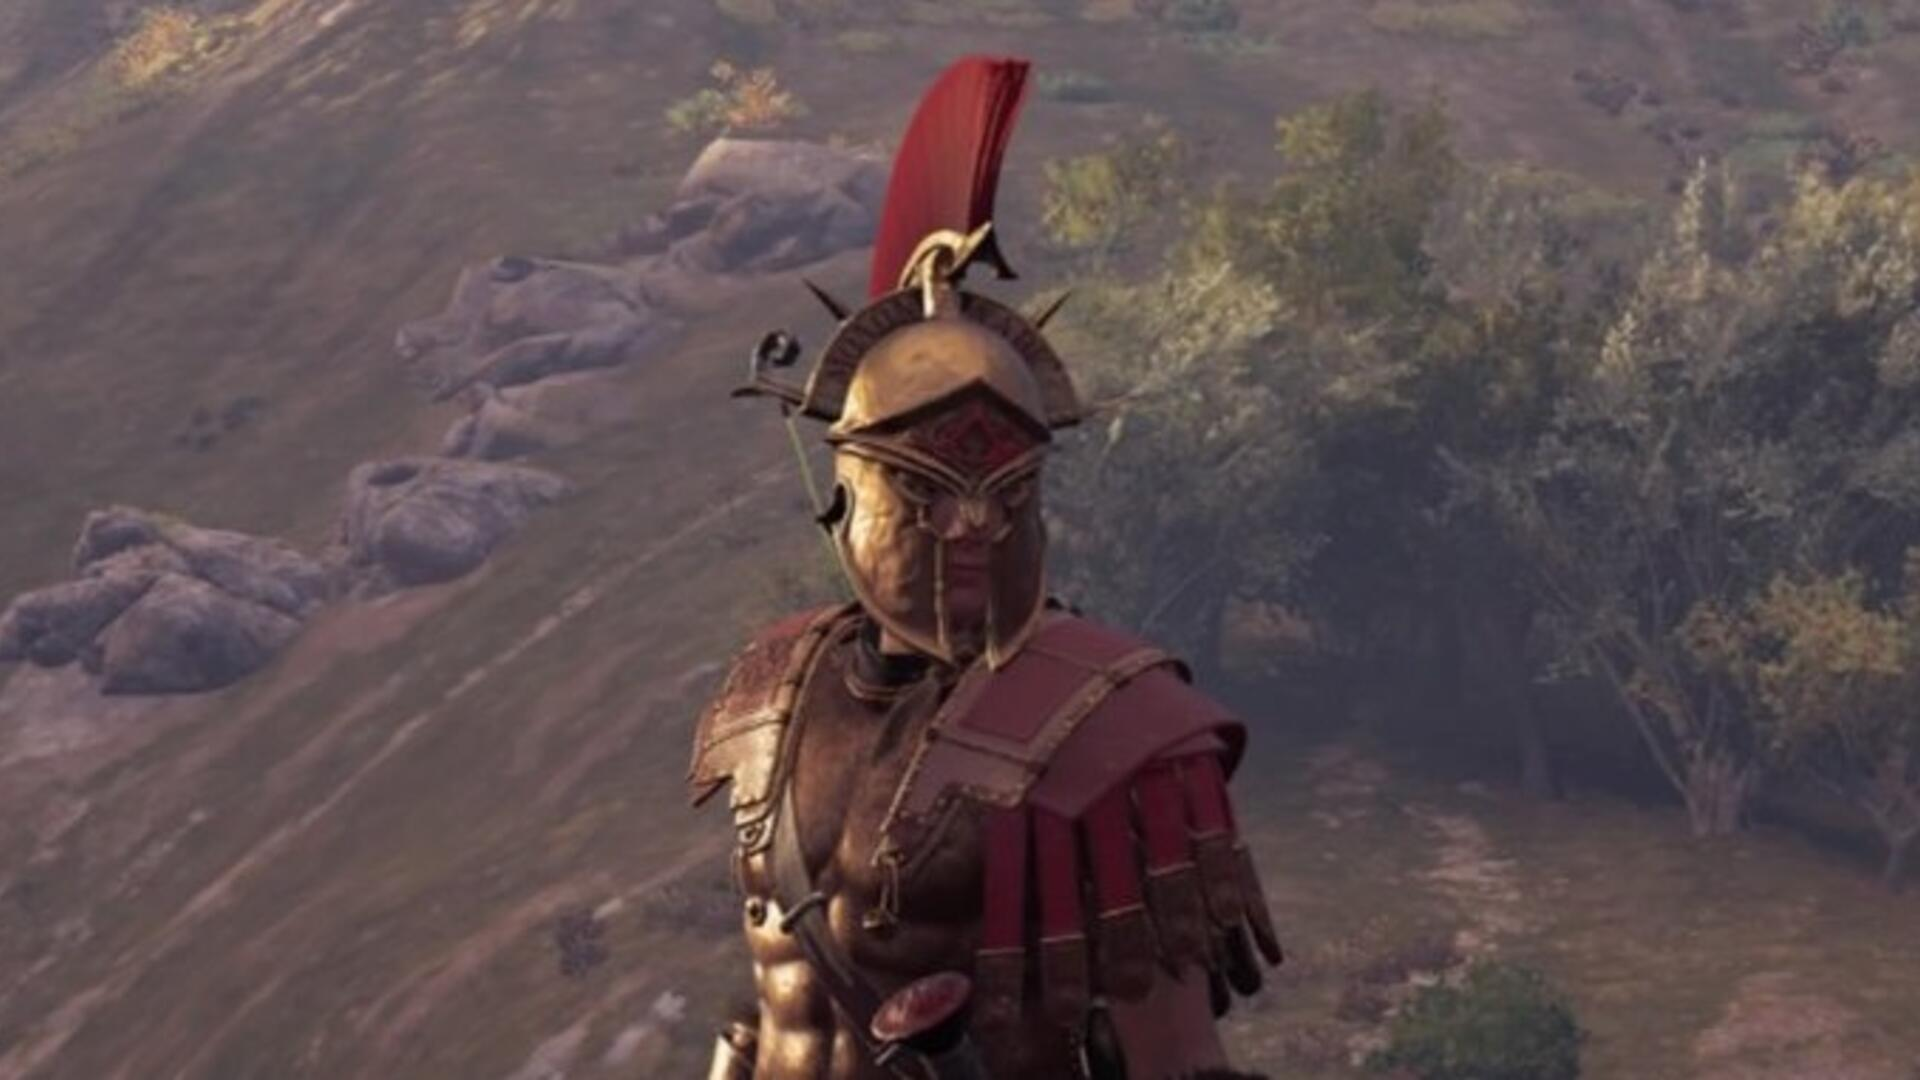 Assassin's Creed Odyssey Amazon Armor - How to Get the Legendary Amazon Armor